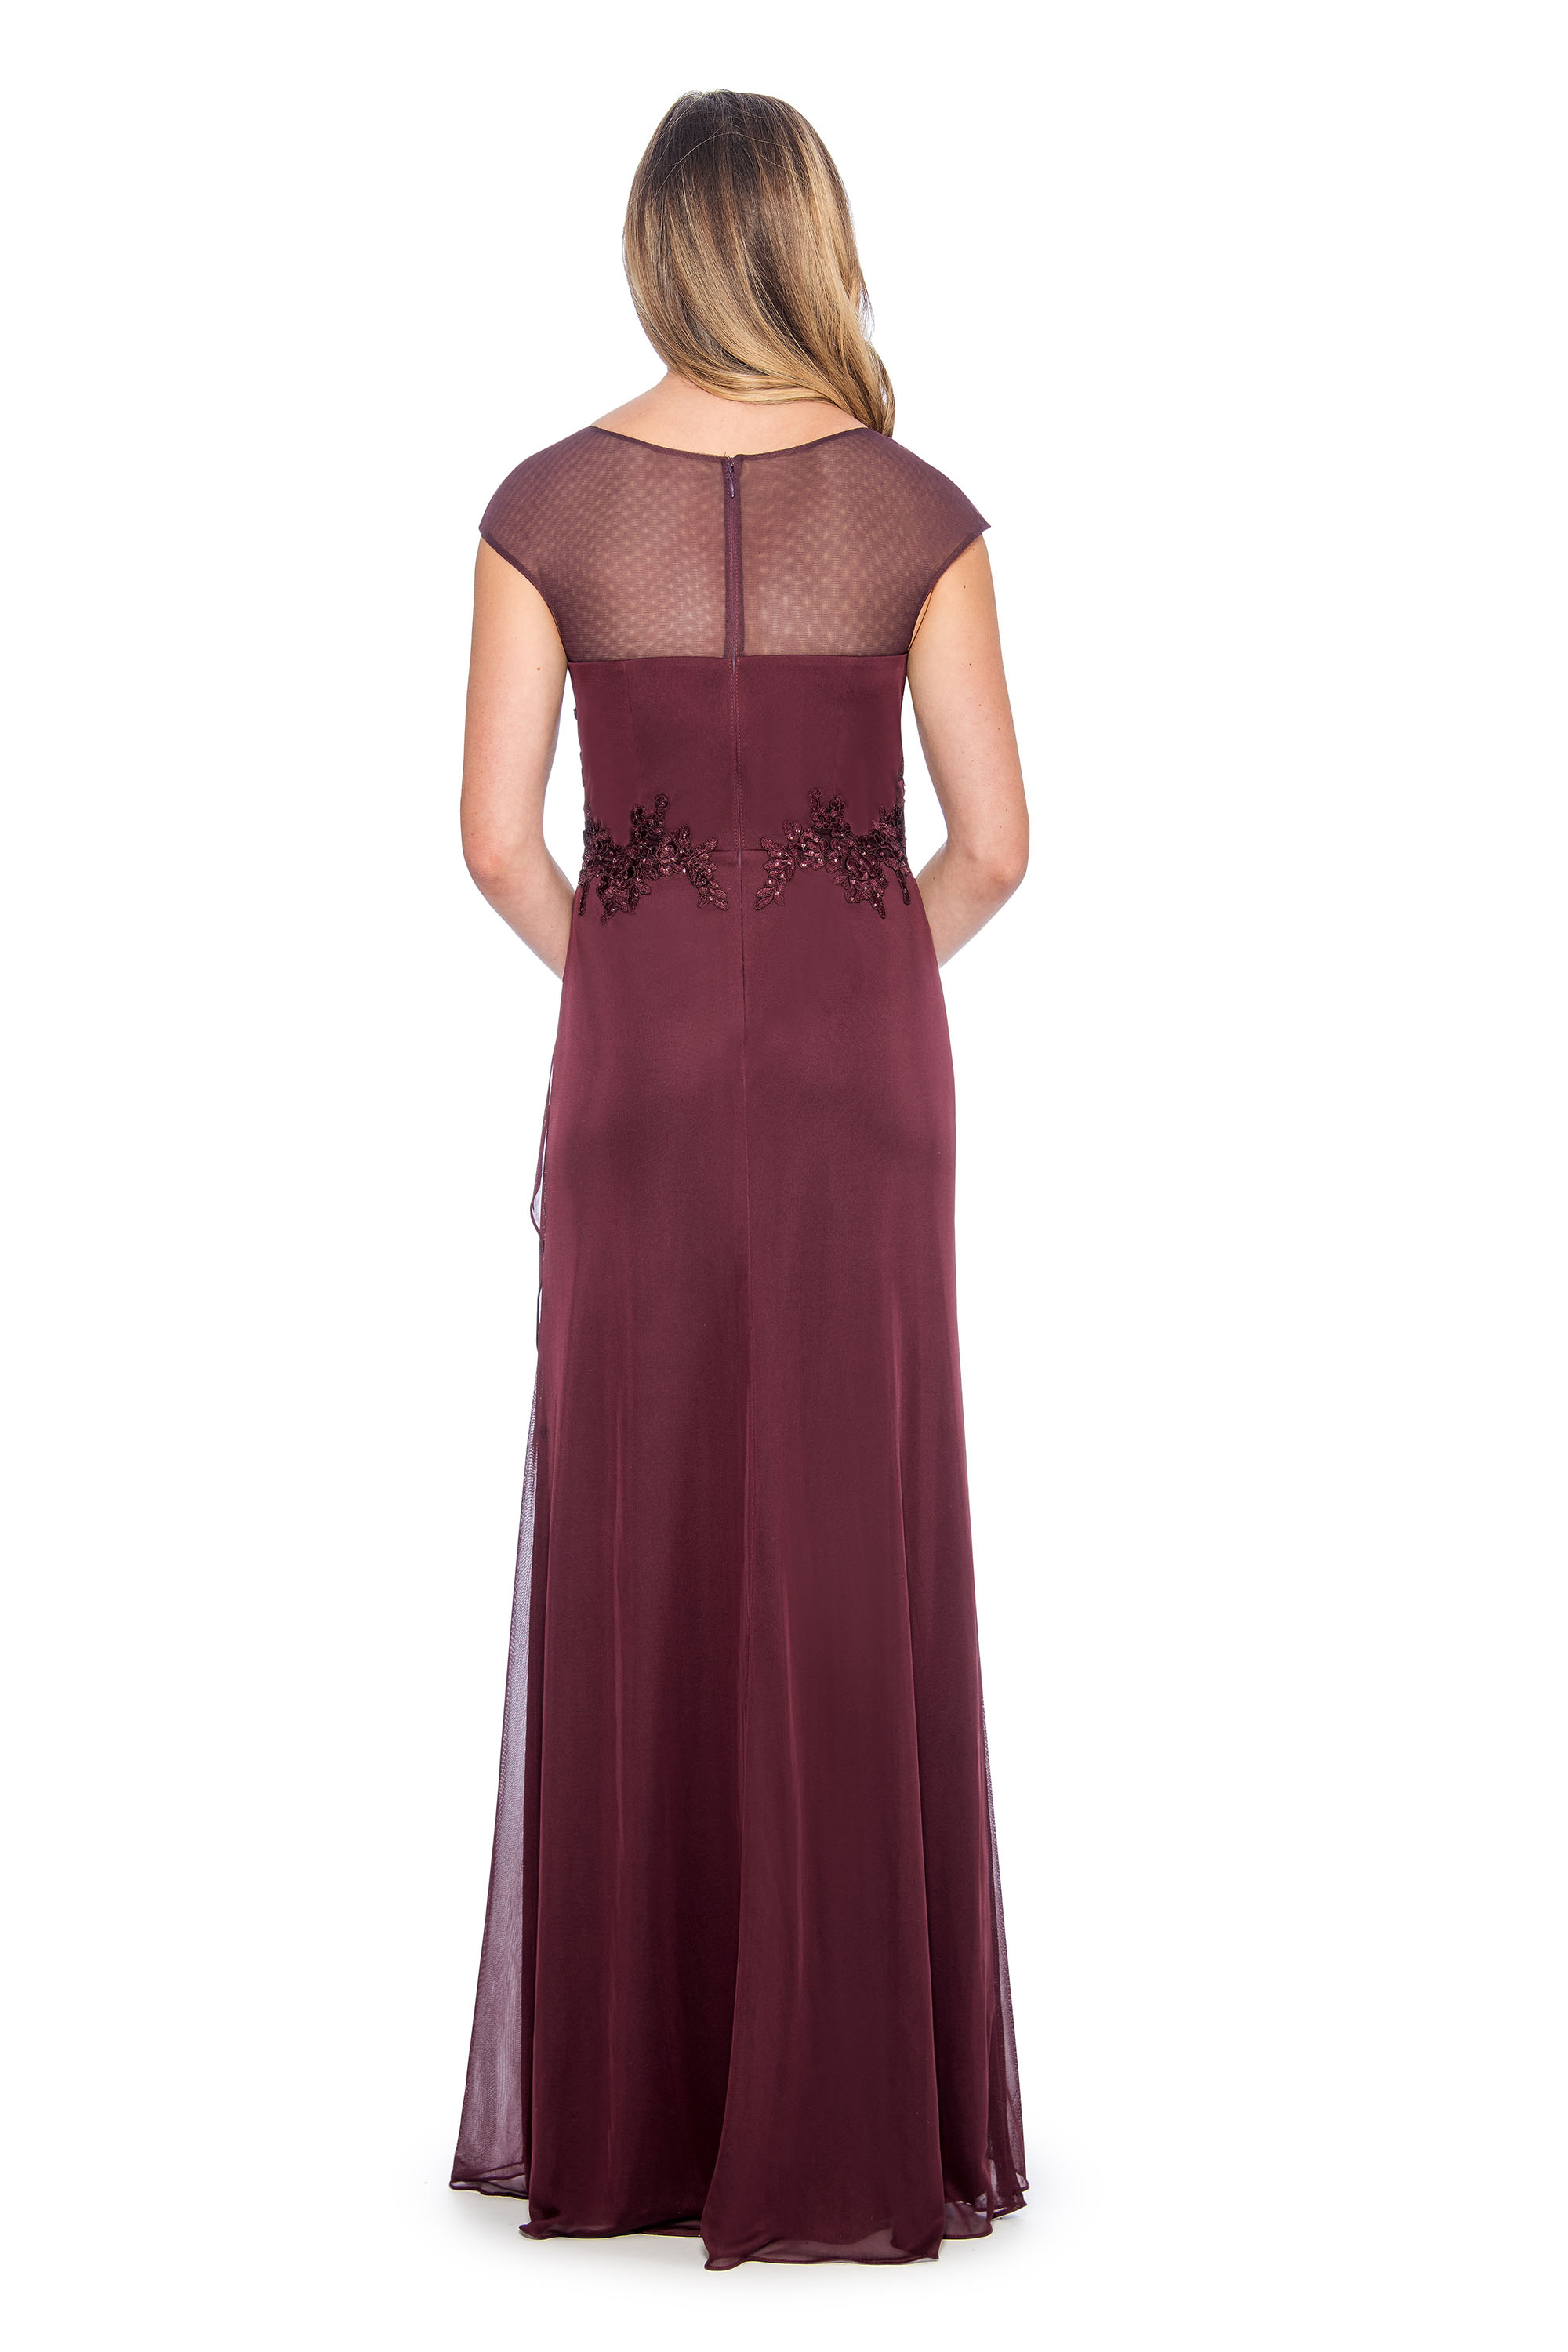 9517646cf5 Lace applique top overlay cascade long gown - formal evening dress - mother  of bride dress